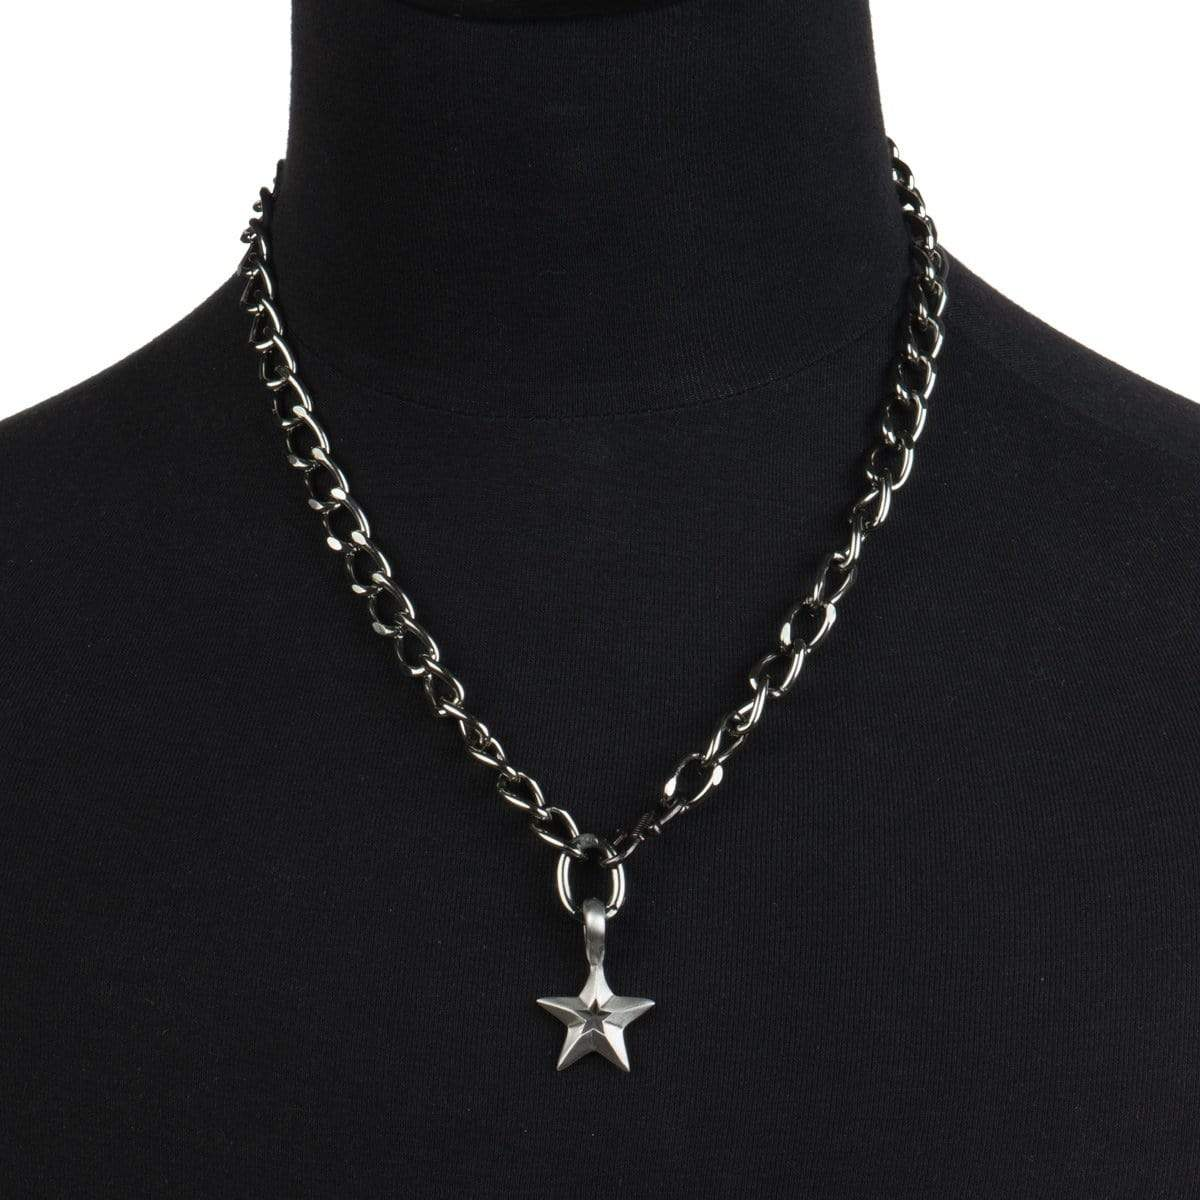 Necklace Chain -  Star